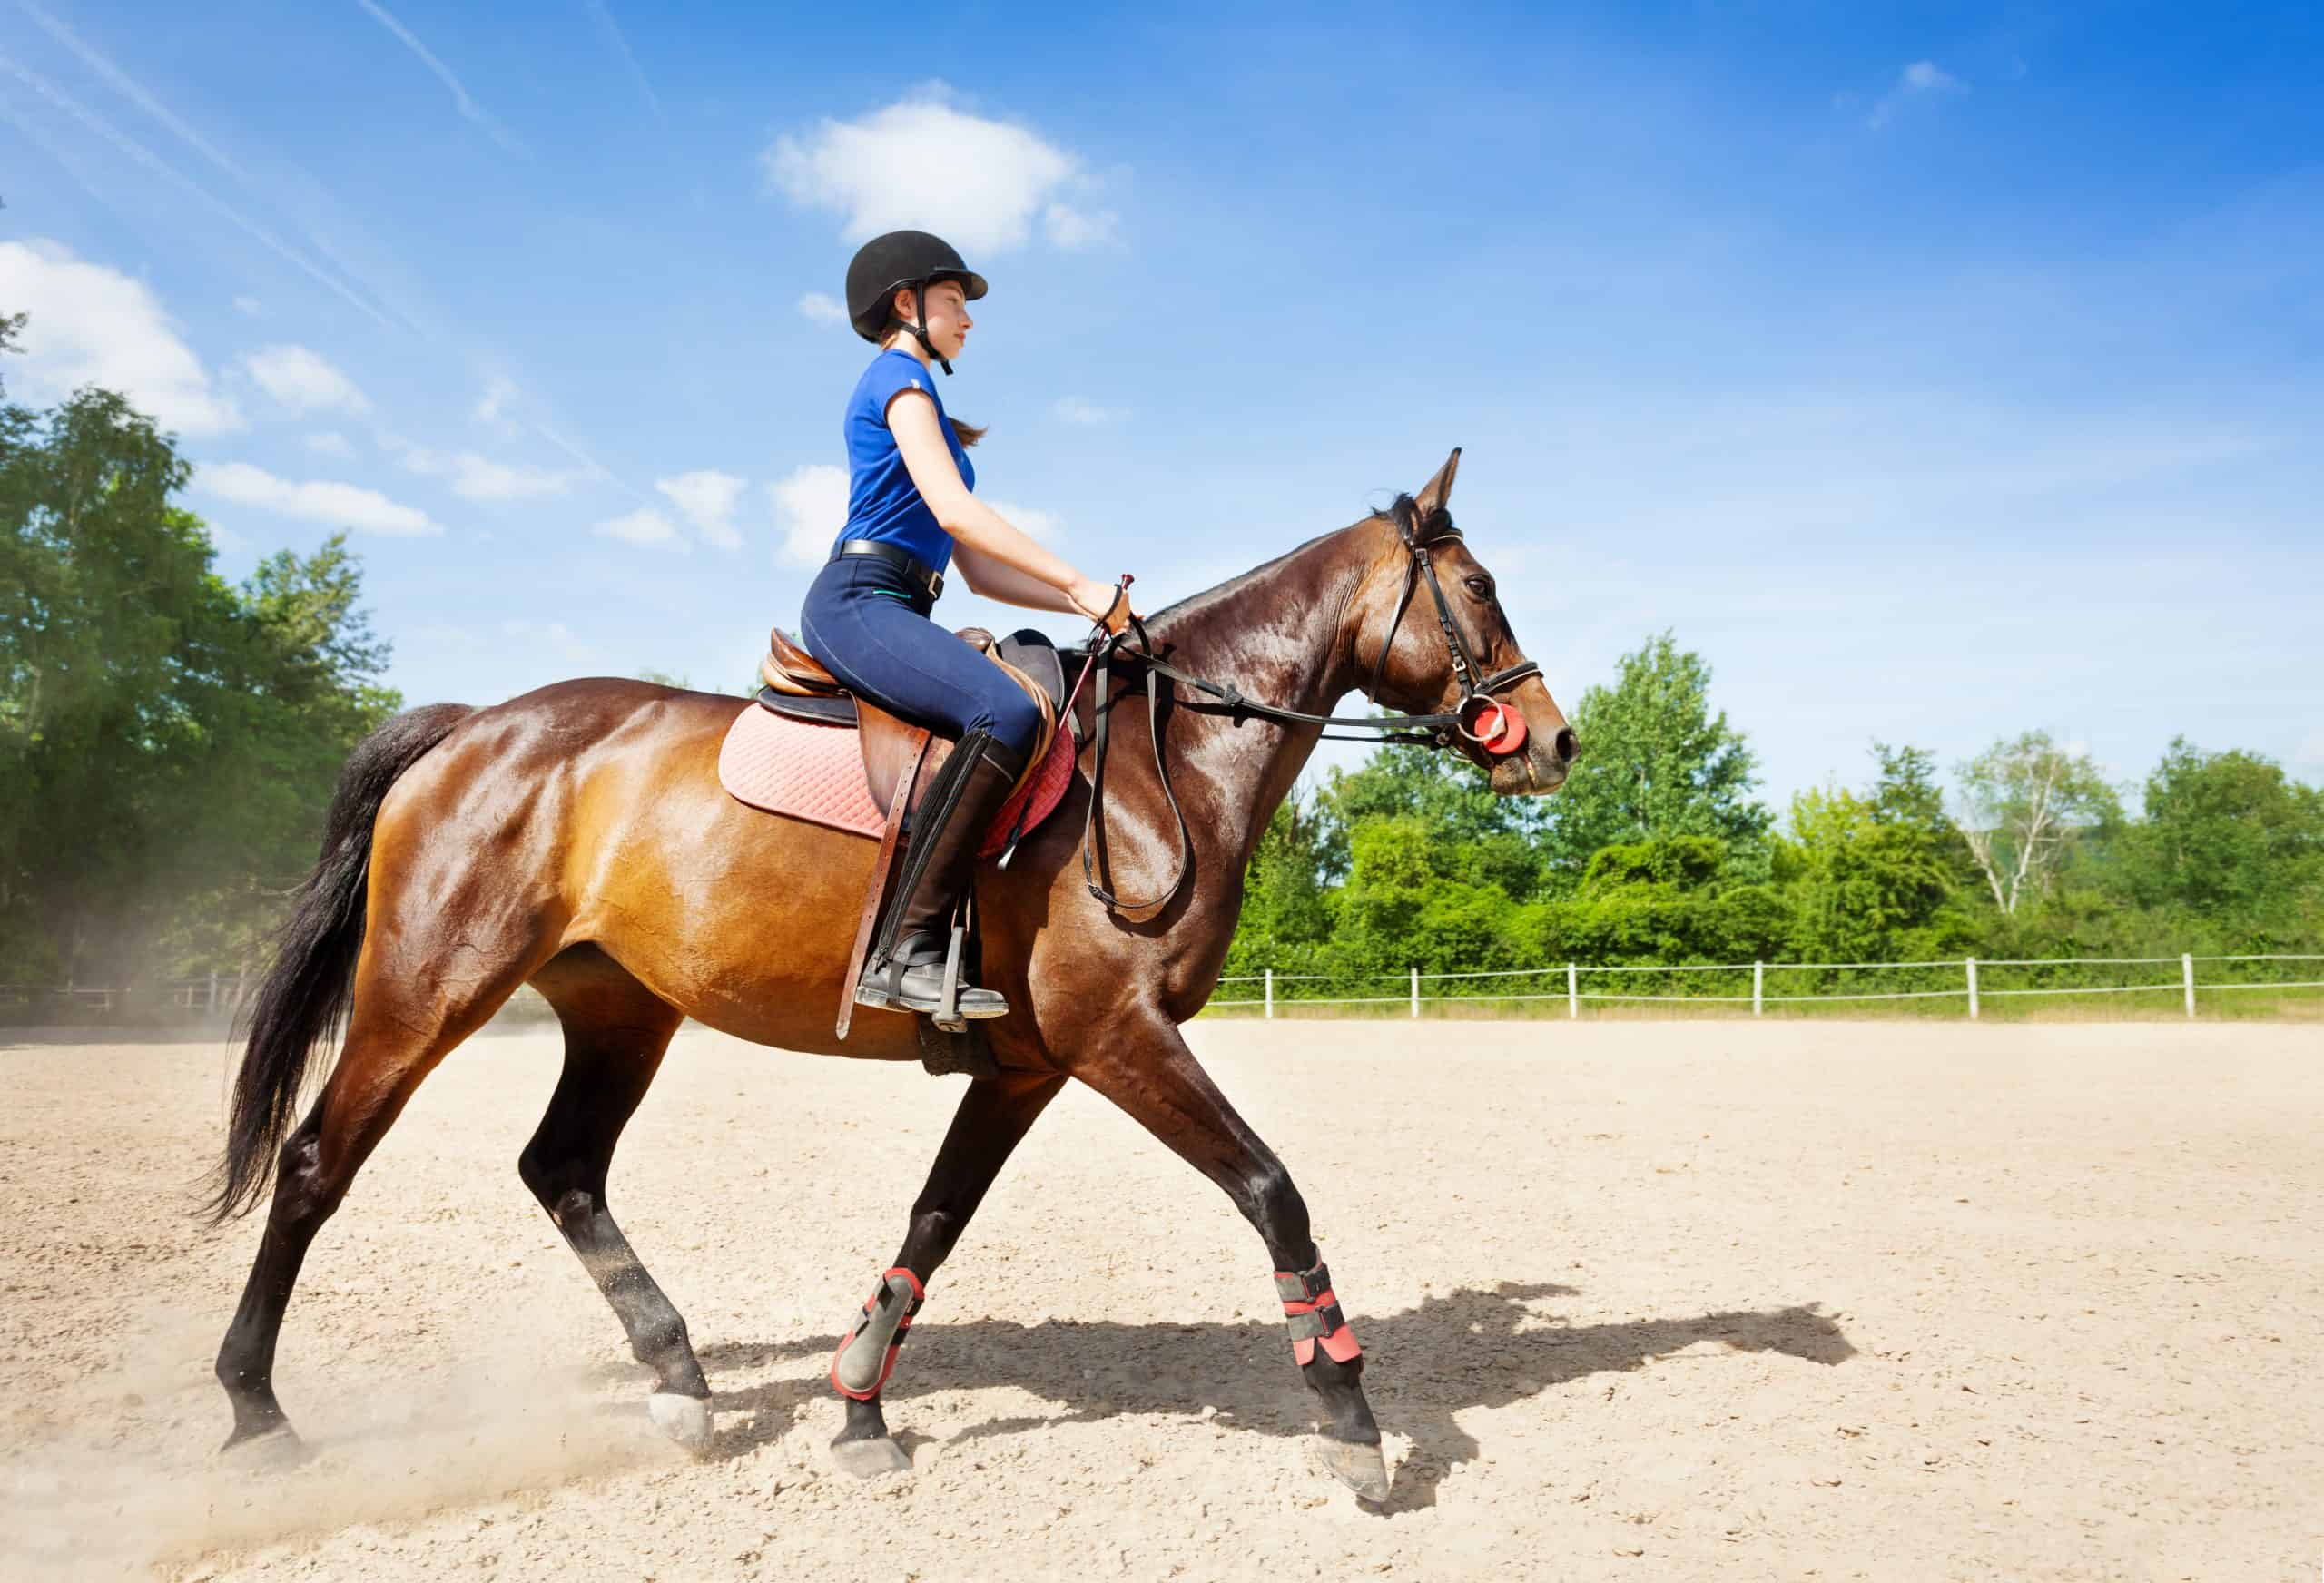 Side view portrait of beautiful bay horse and female equestrian riding at racetrack during competition